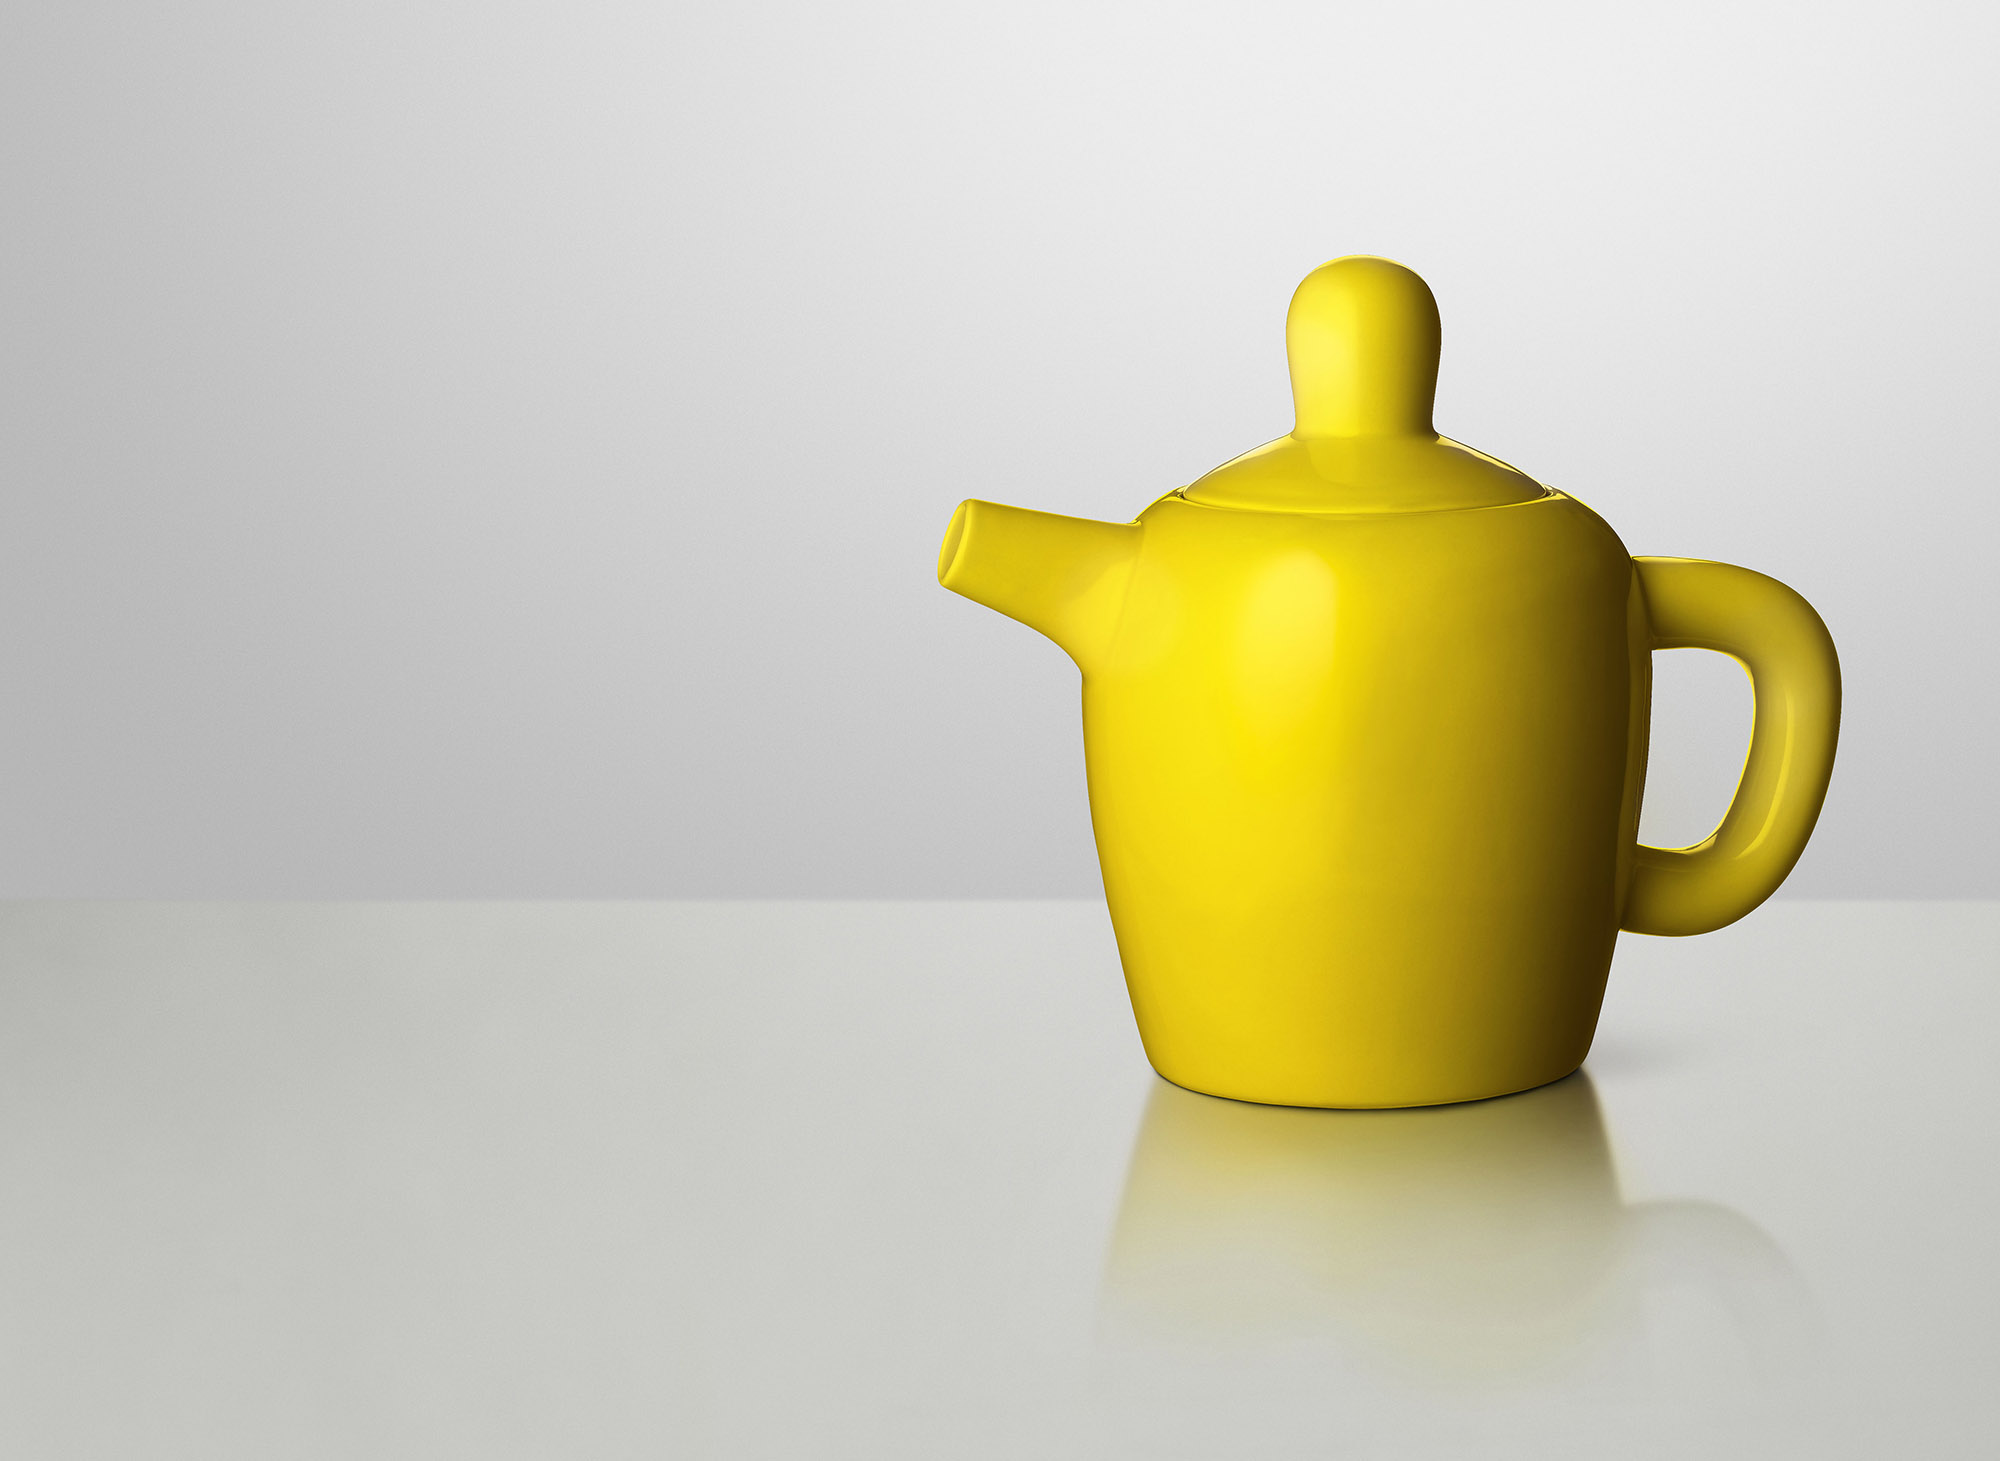 Bulky_Tea-pot_Yellow_2000x1461